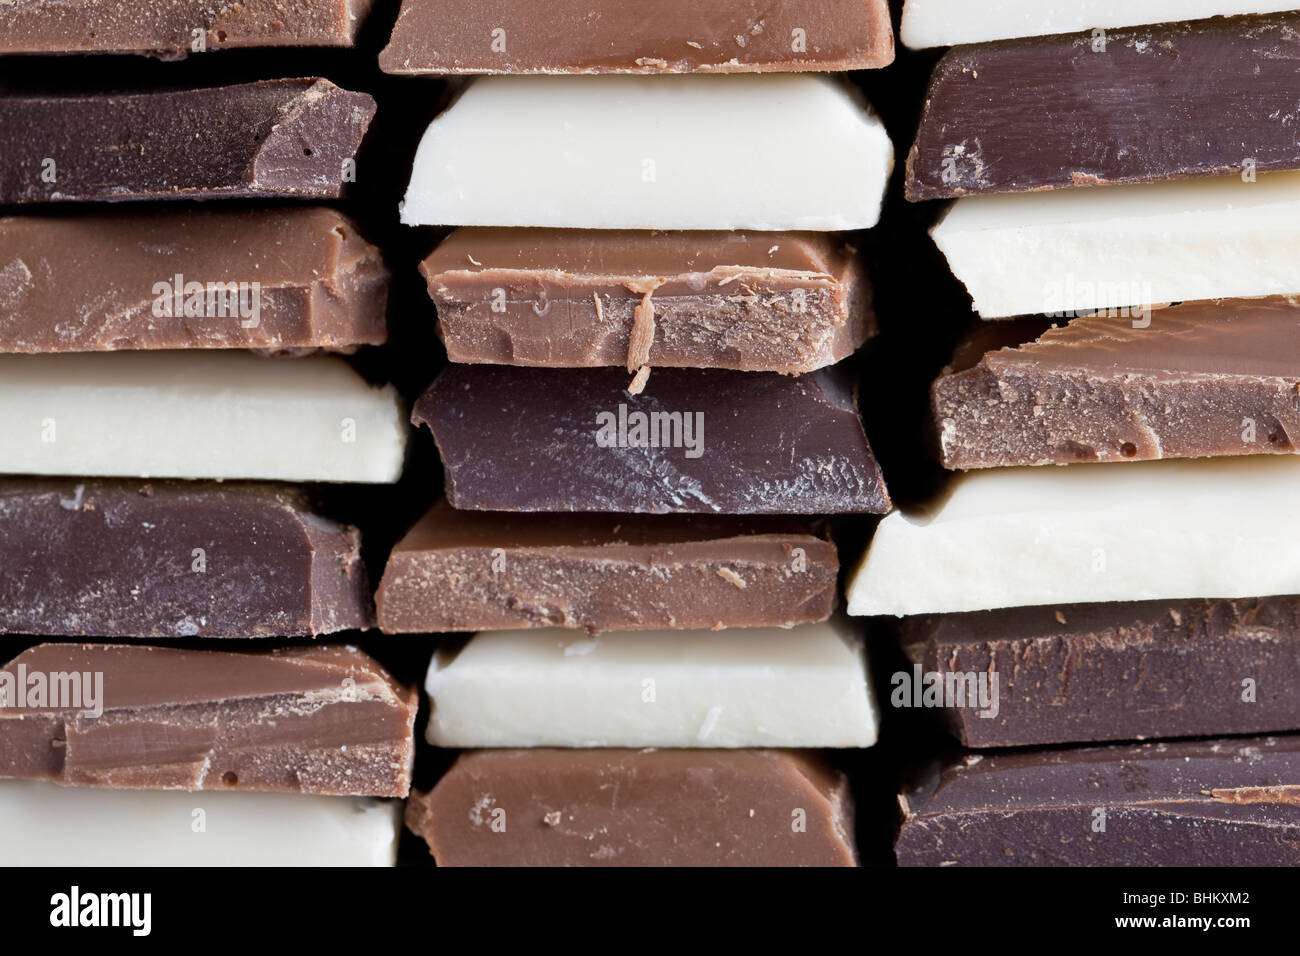 Many flavors of chocolate stacked up - Stock Image